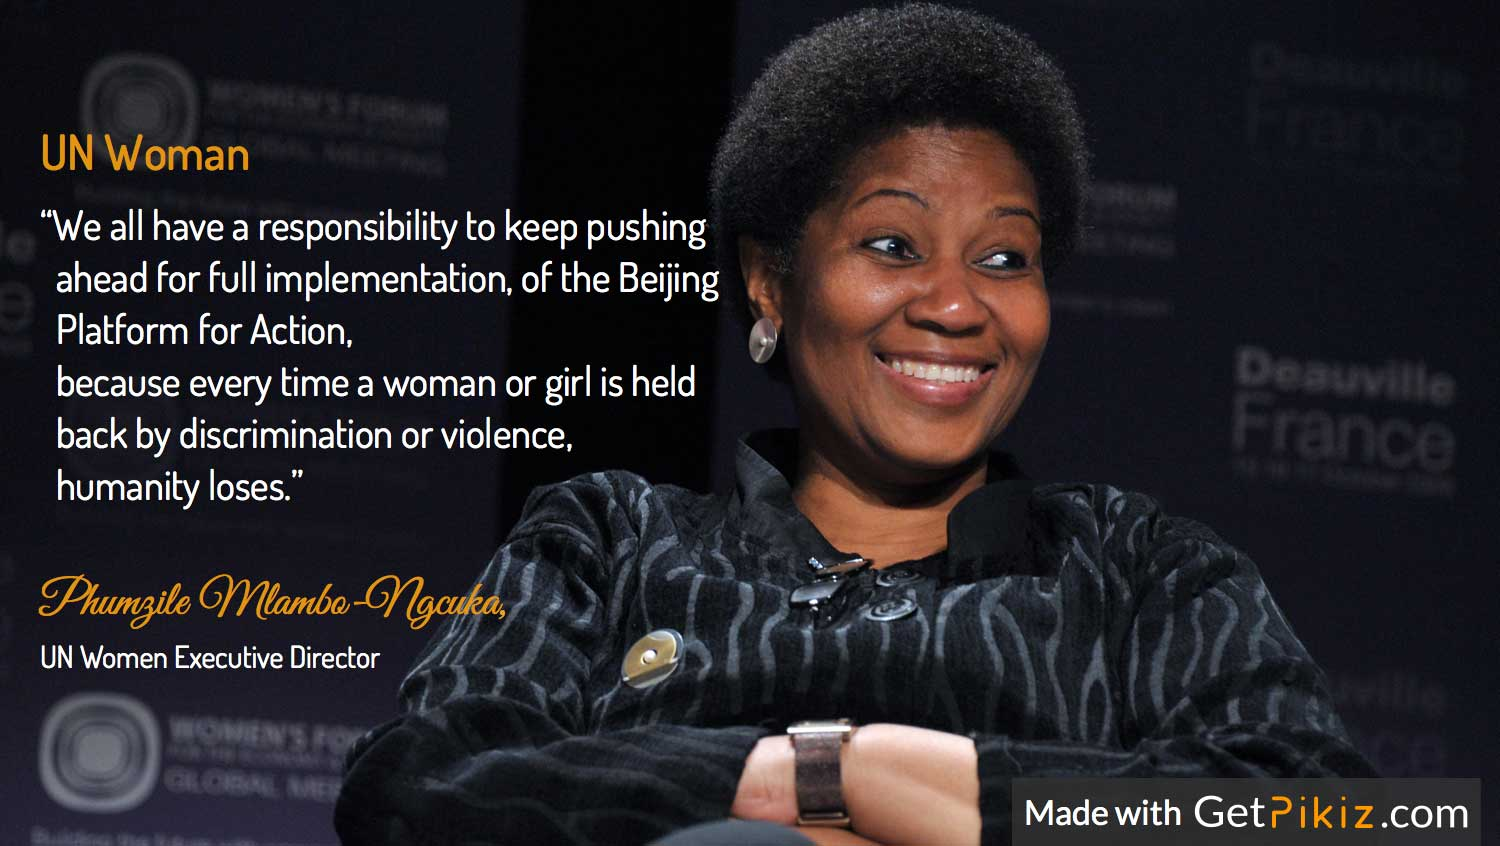 Phumzile Mlambo Ngcuka, UN Women Executive Director